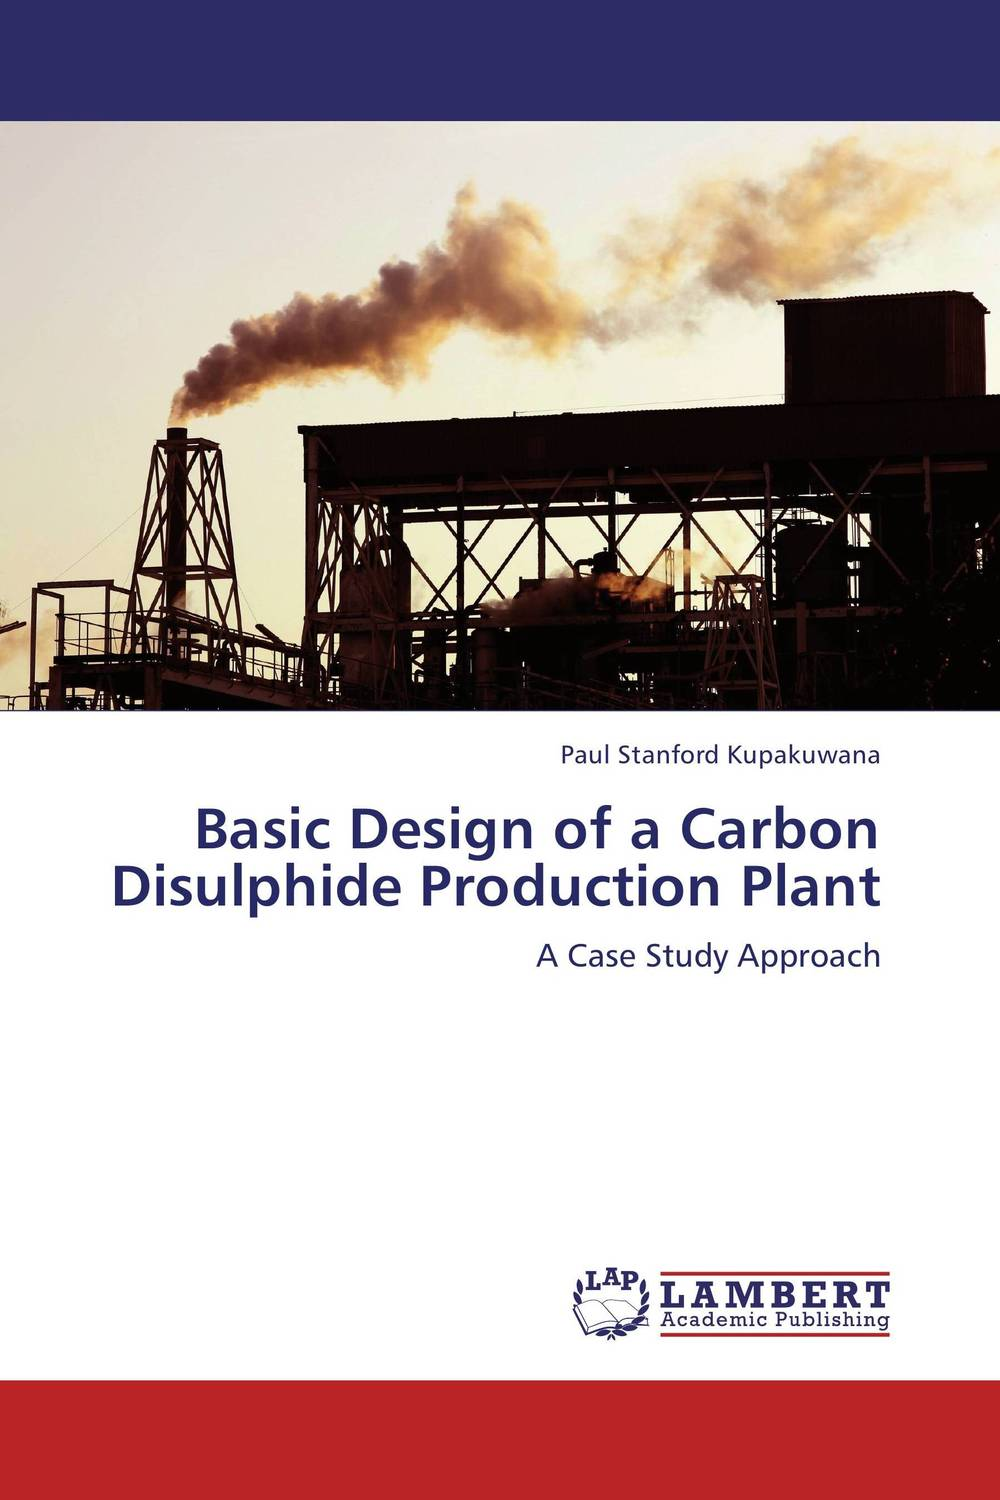 Basic Design of a Carbon Disulphide Production Plant